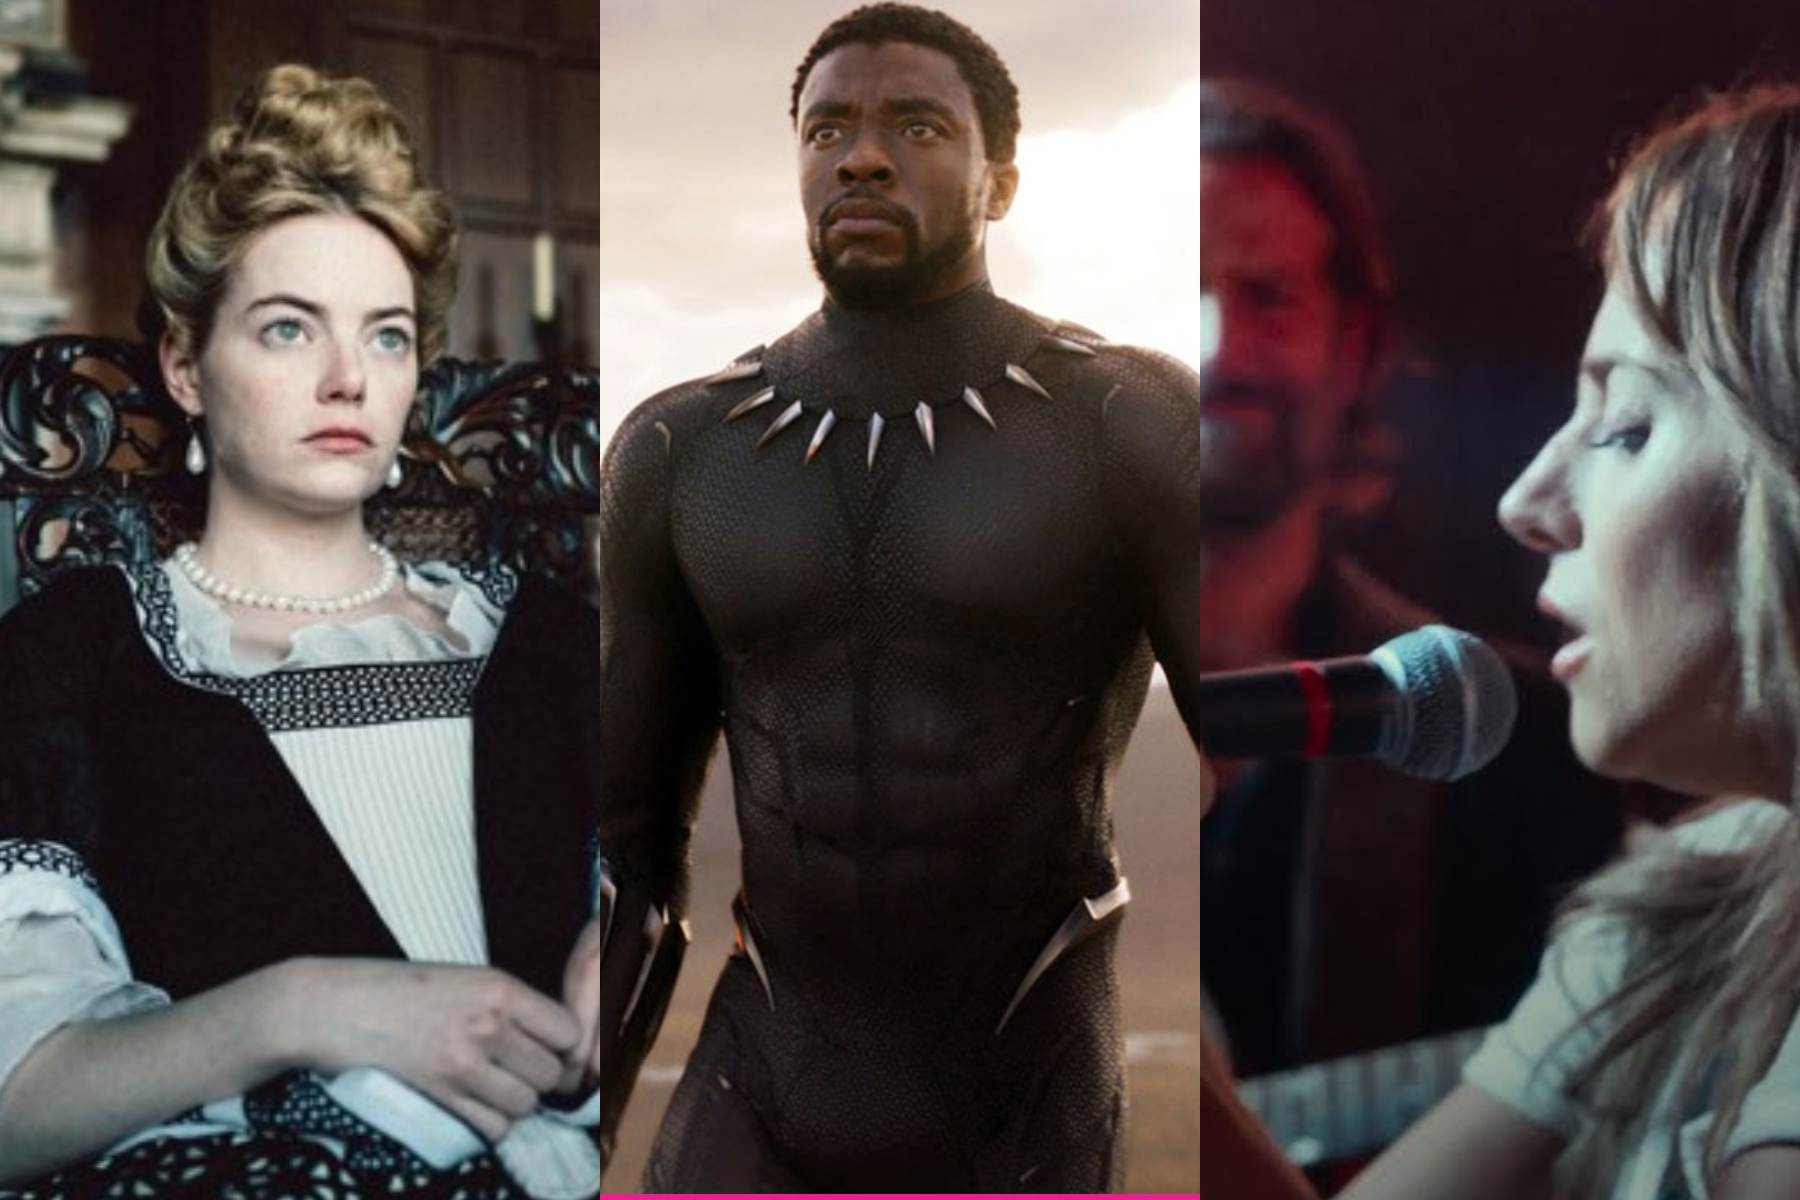 The Favourite, Black Panther, and A Star Is Born are all nominated for multiple Oscars.